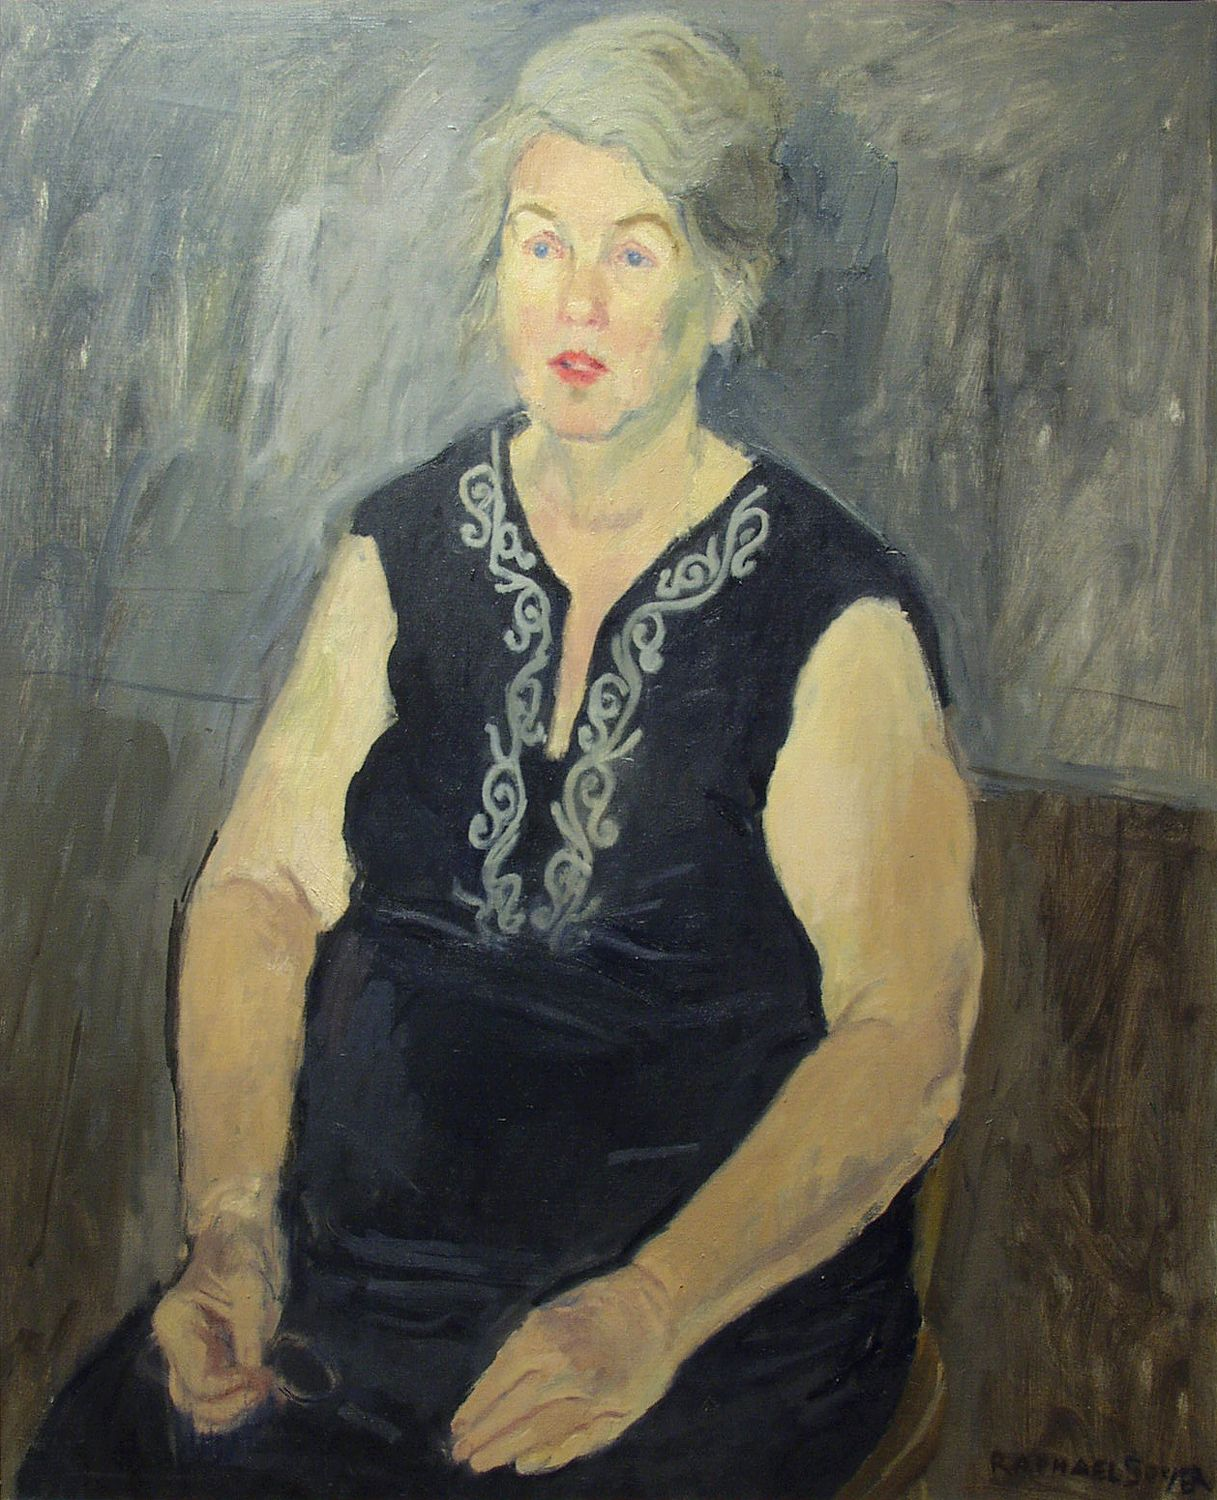 Raphael Soyer, Alice Neel (SOLD), 1971, oil on canvas, 32 x 26 inches